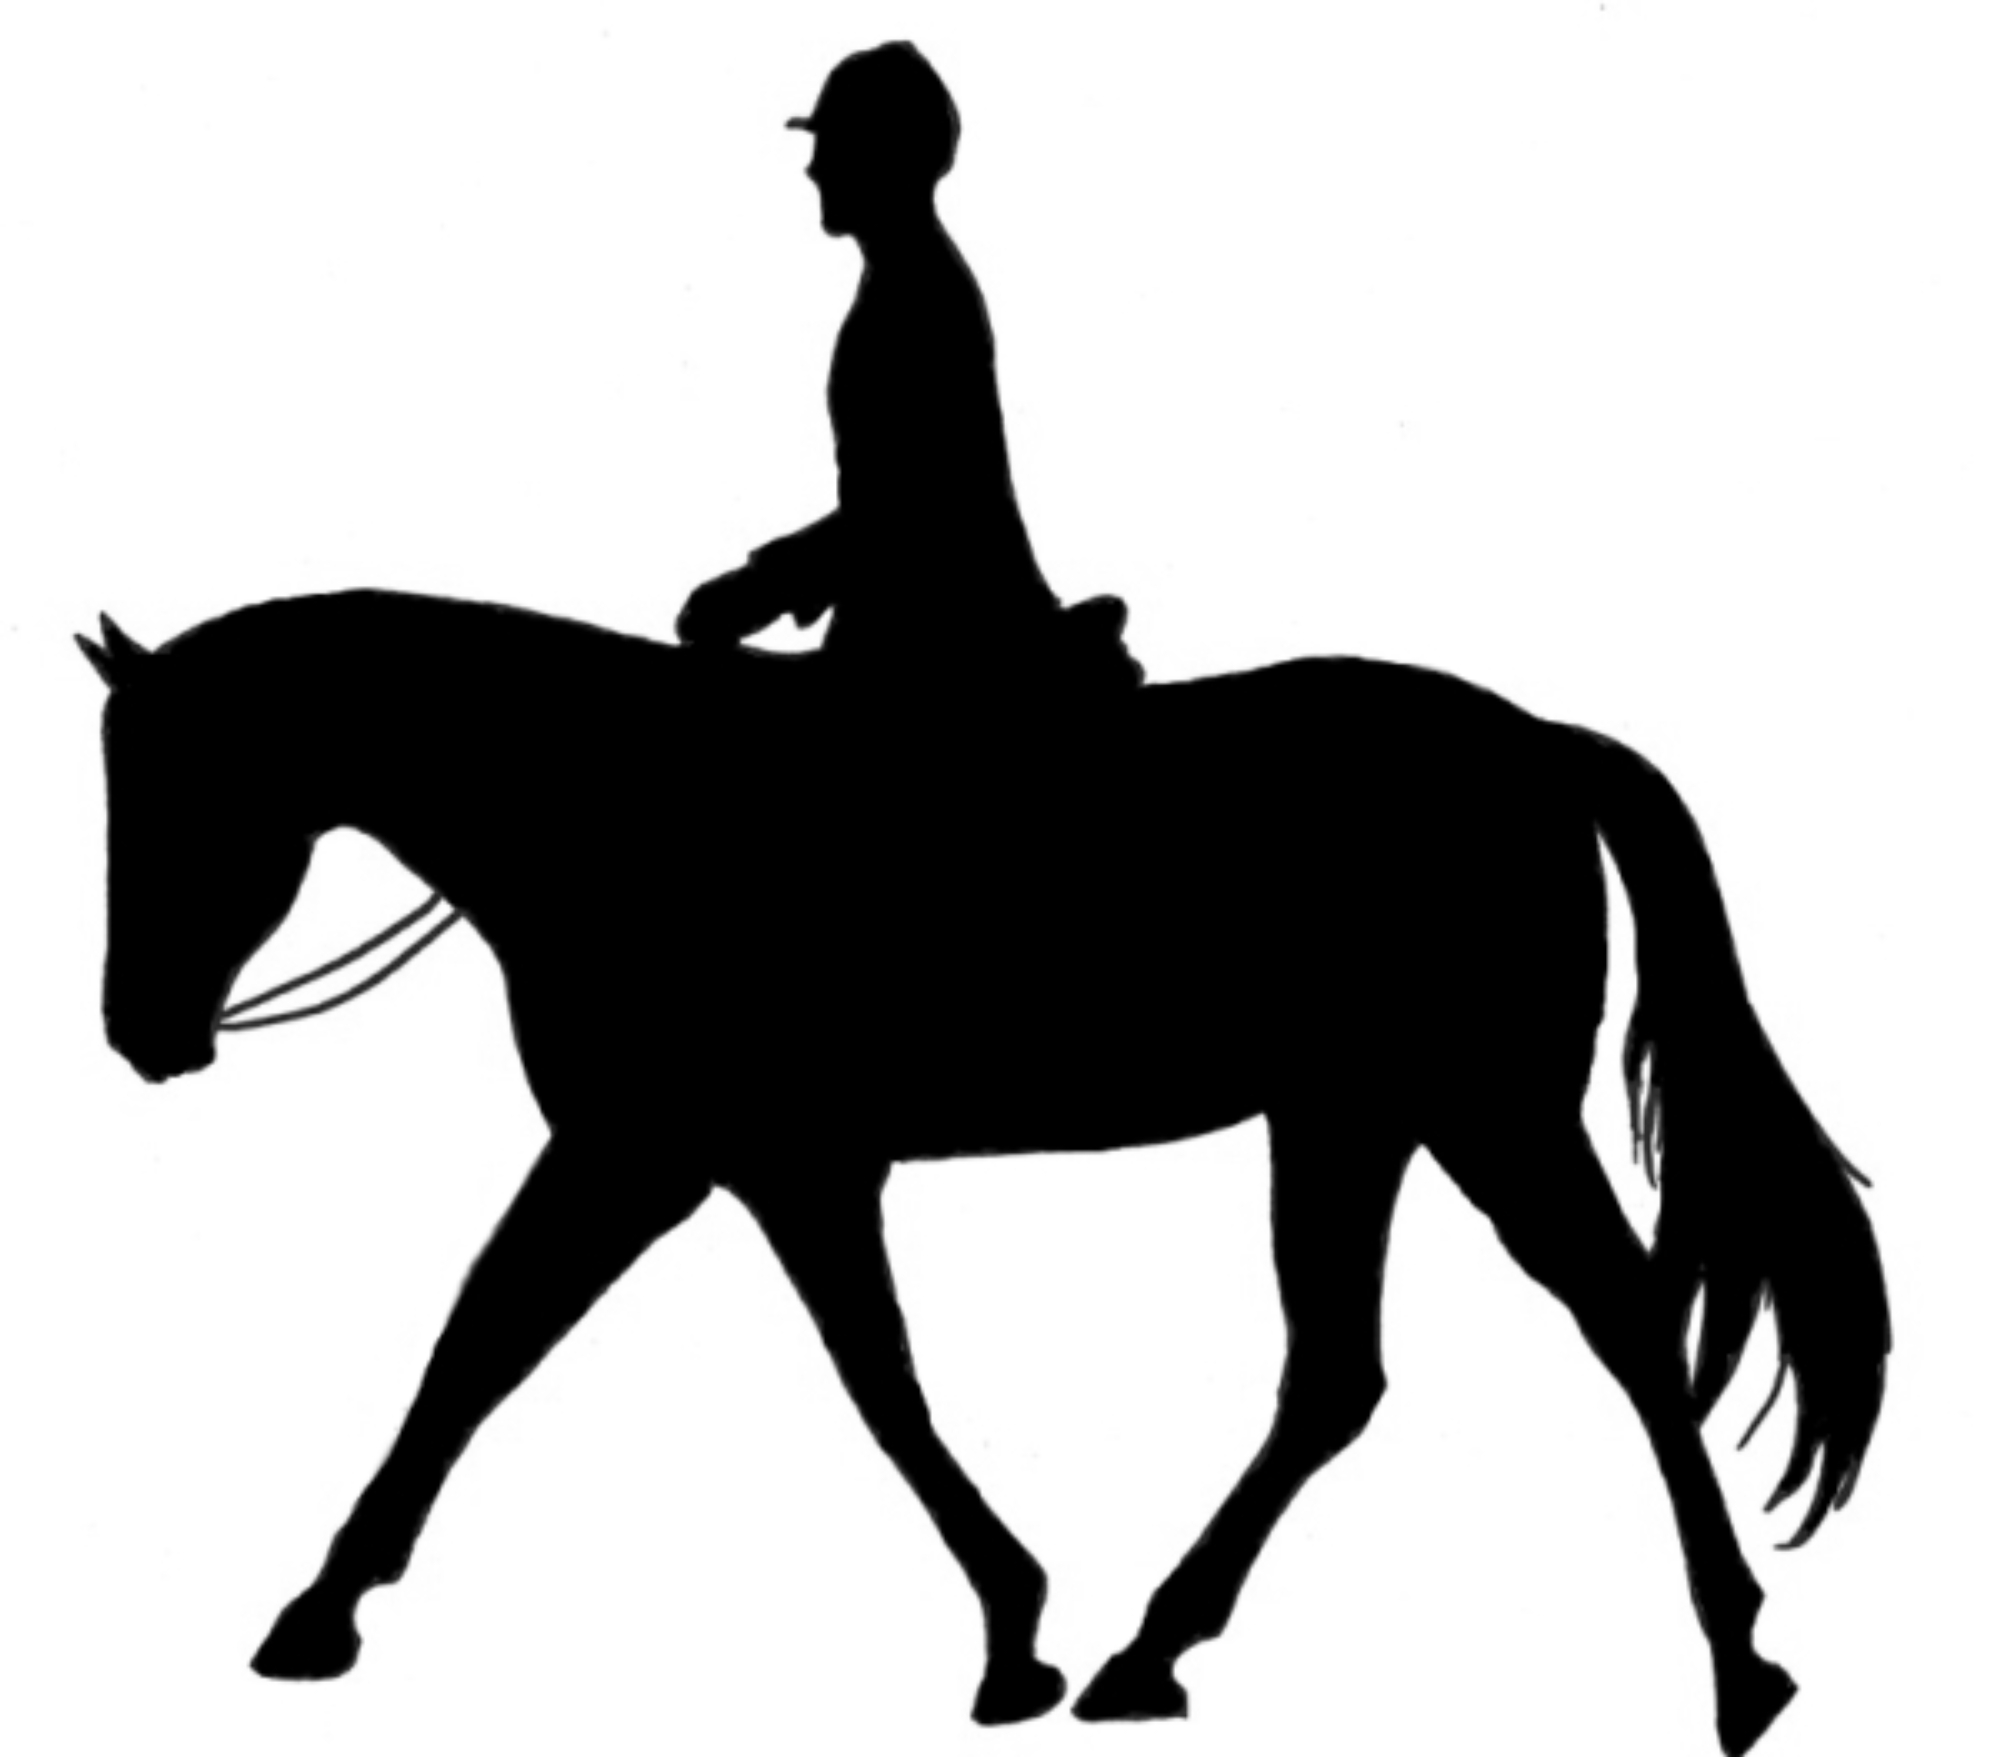 running horse and rider silhouette at getdrawings com free for rh getdrawings com Horse Drawings Horse Drawings